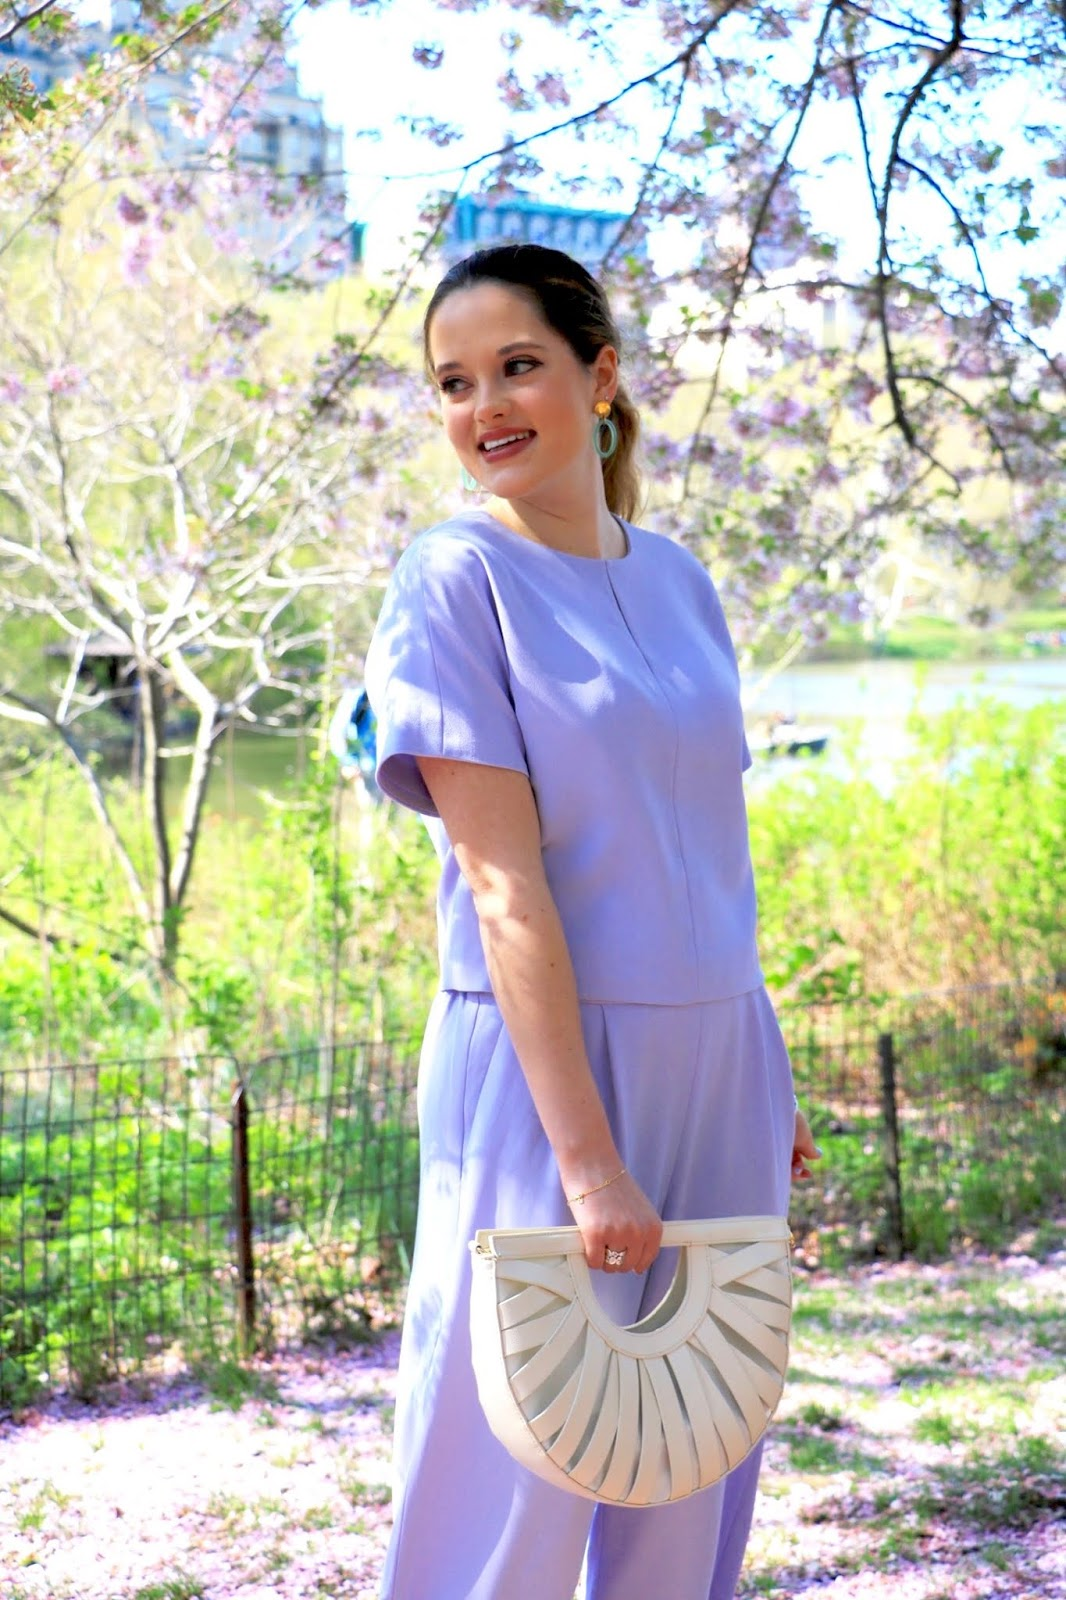 Nyc fashion blogger Kathleen Harper's 2019 spring work outfit idea